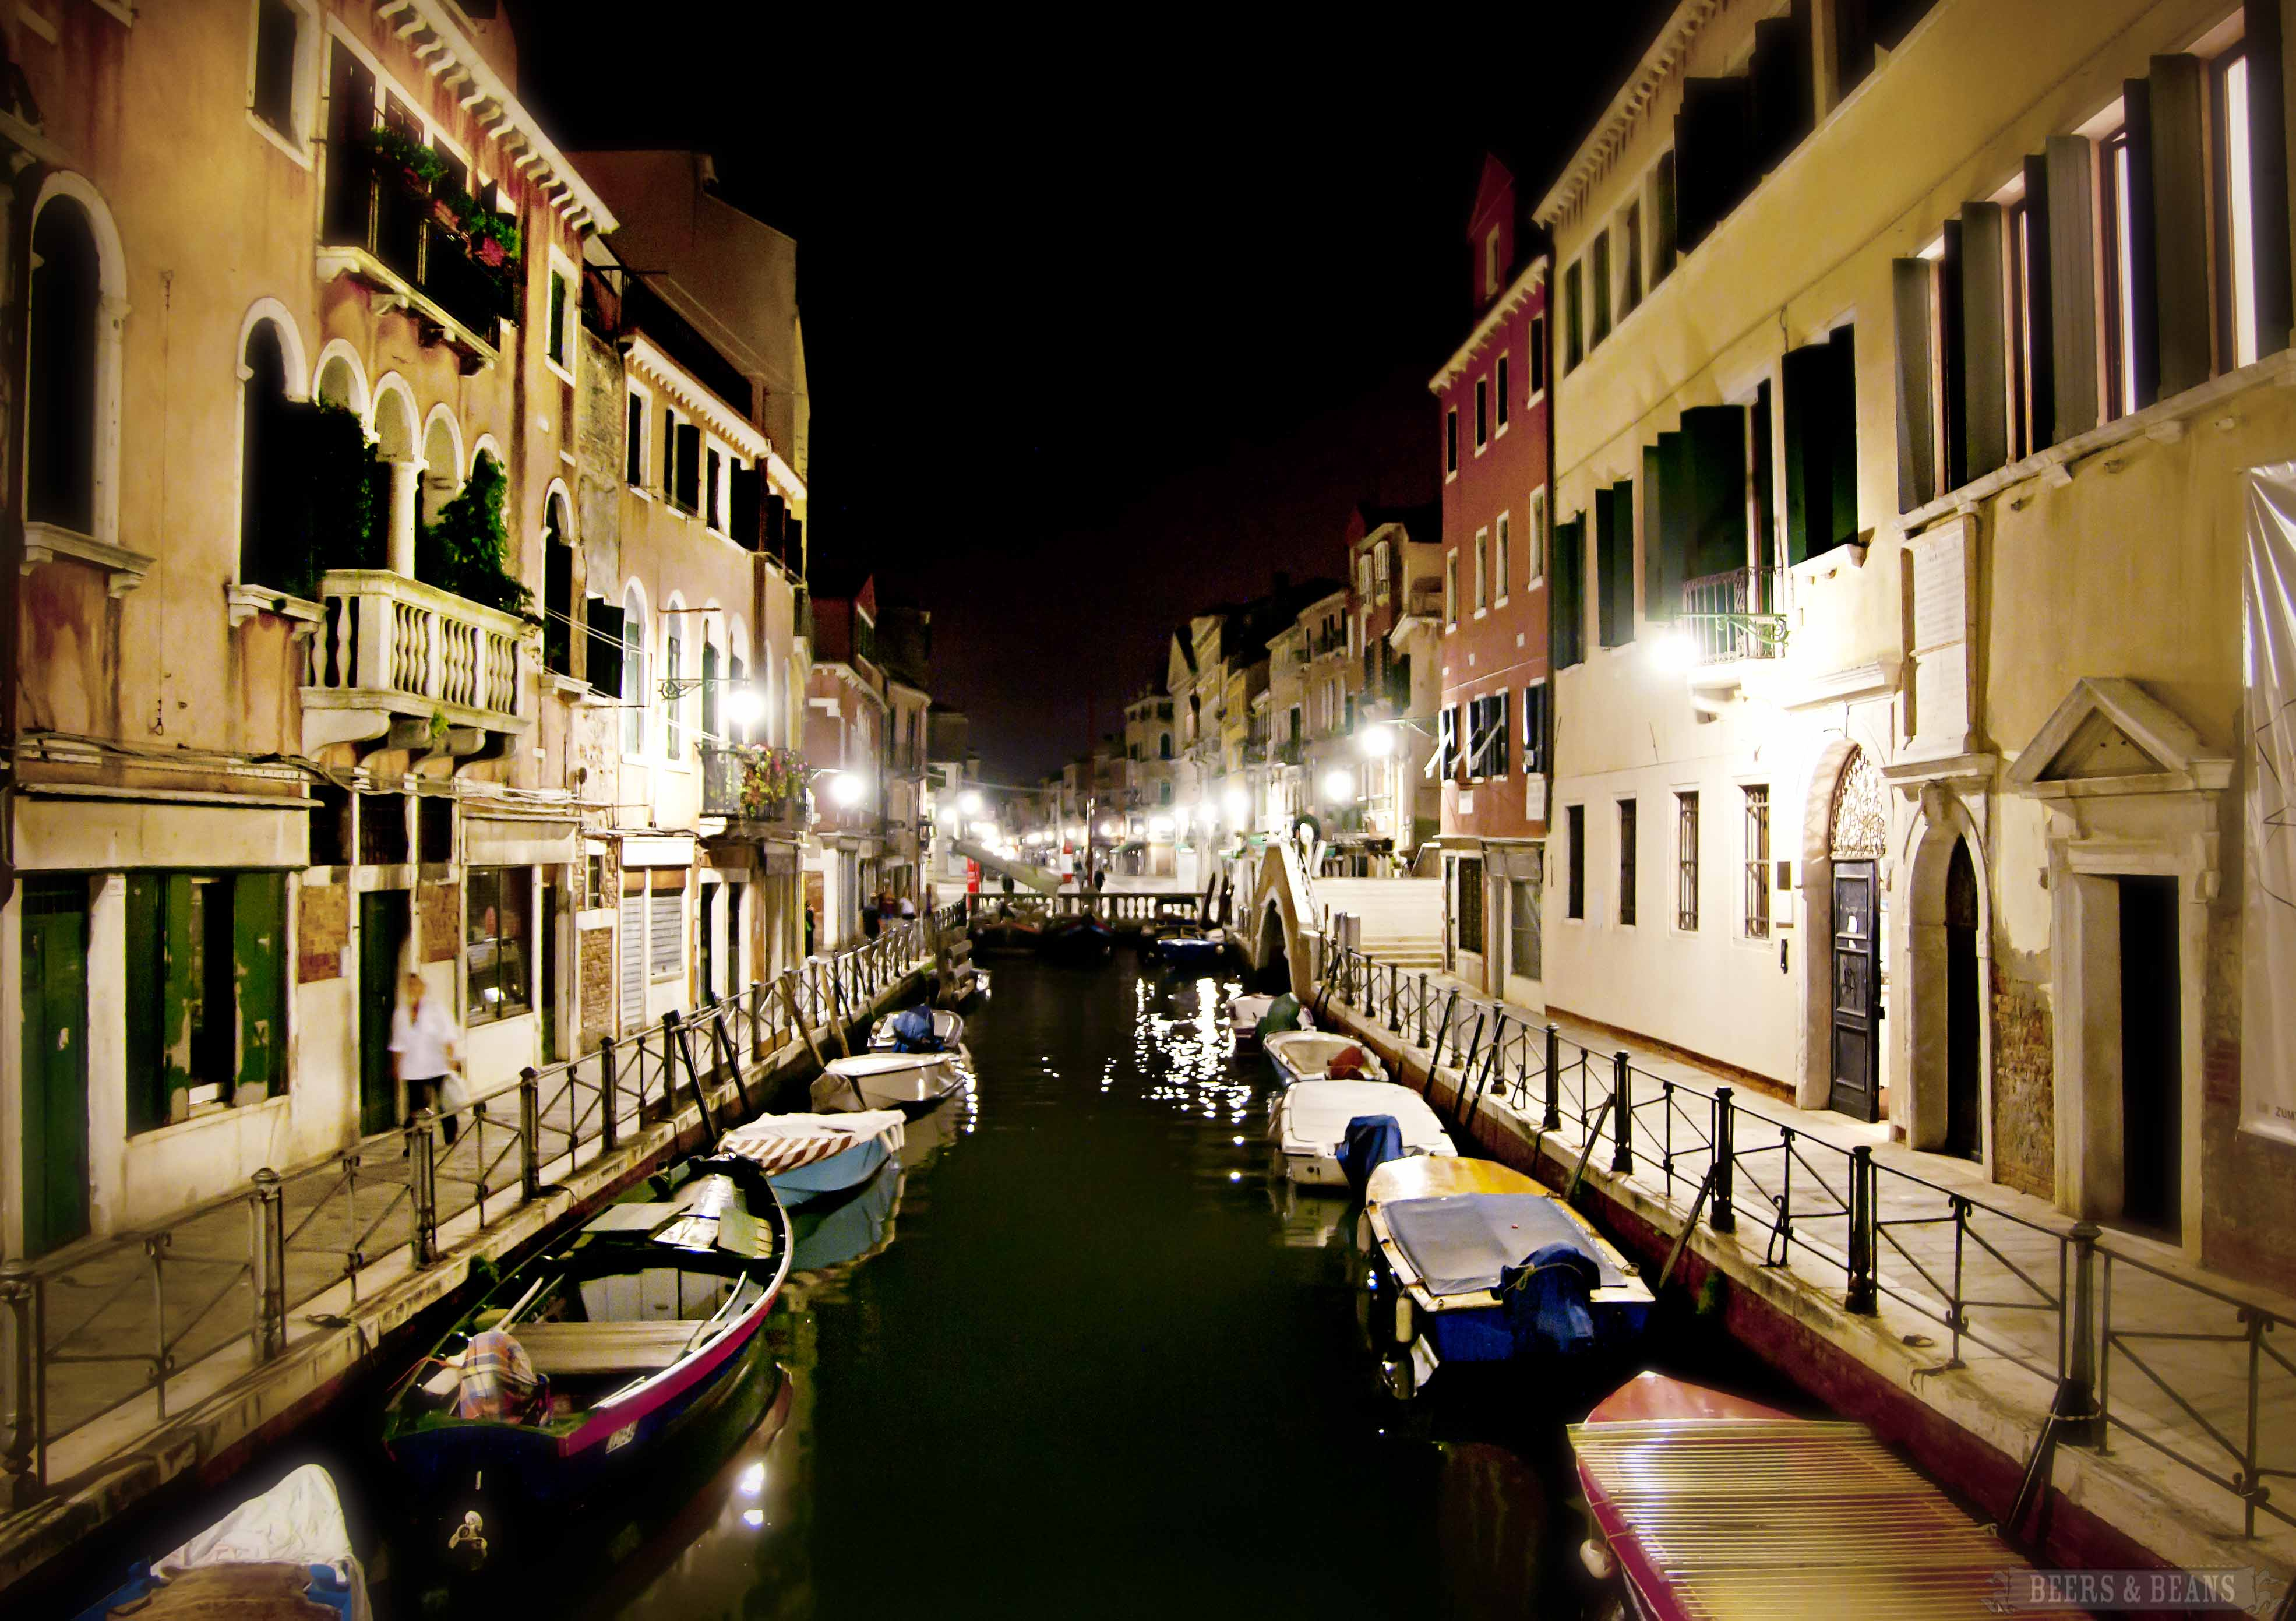 Venice-In-Italy-smallerforBnB